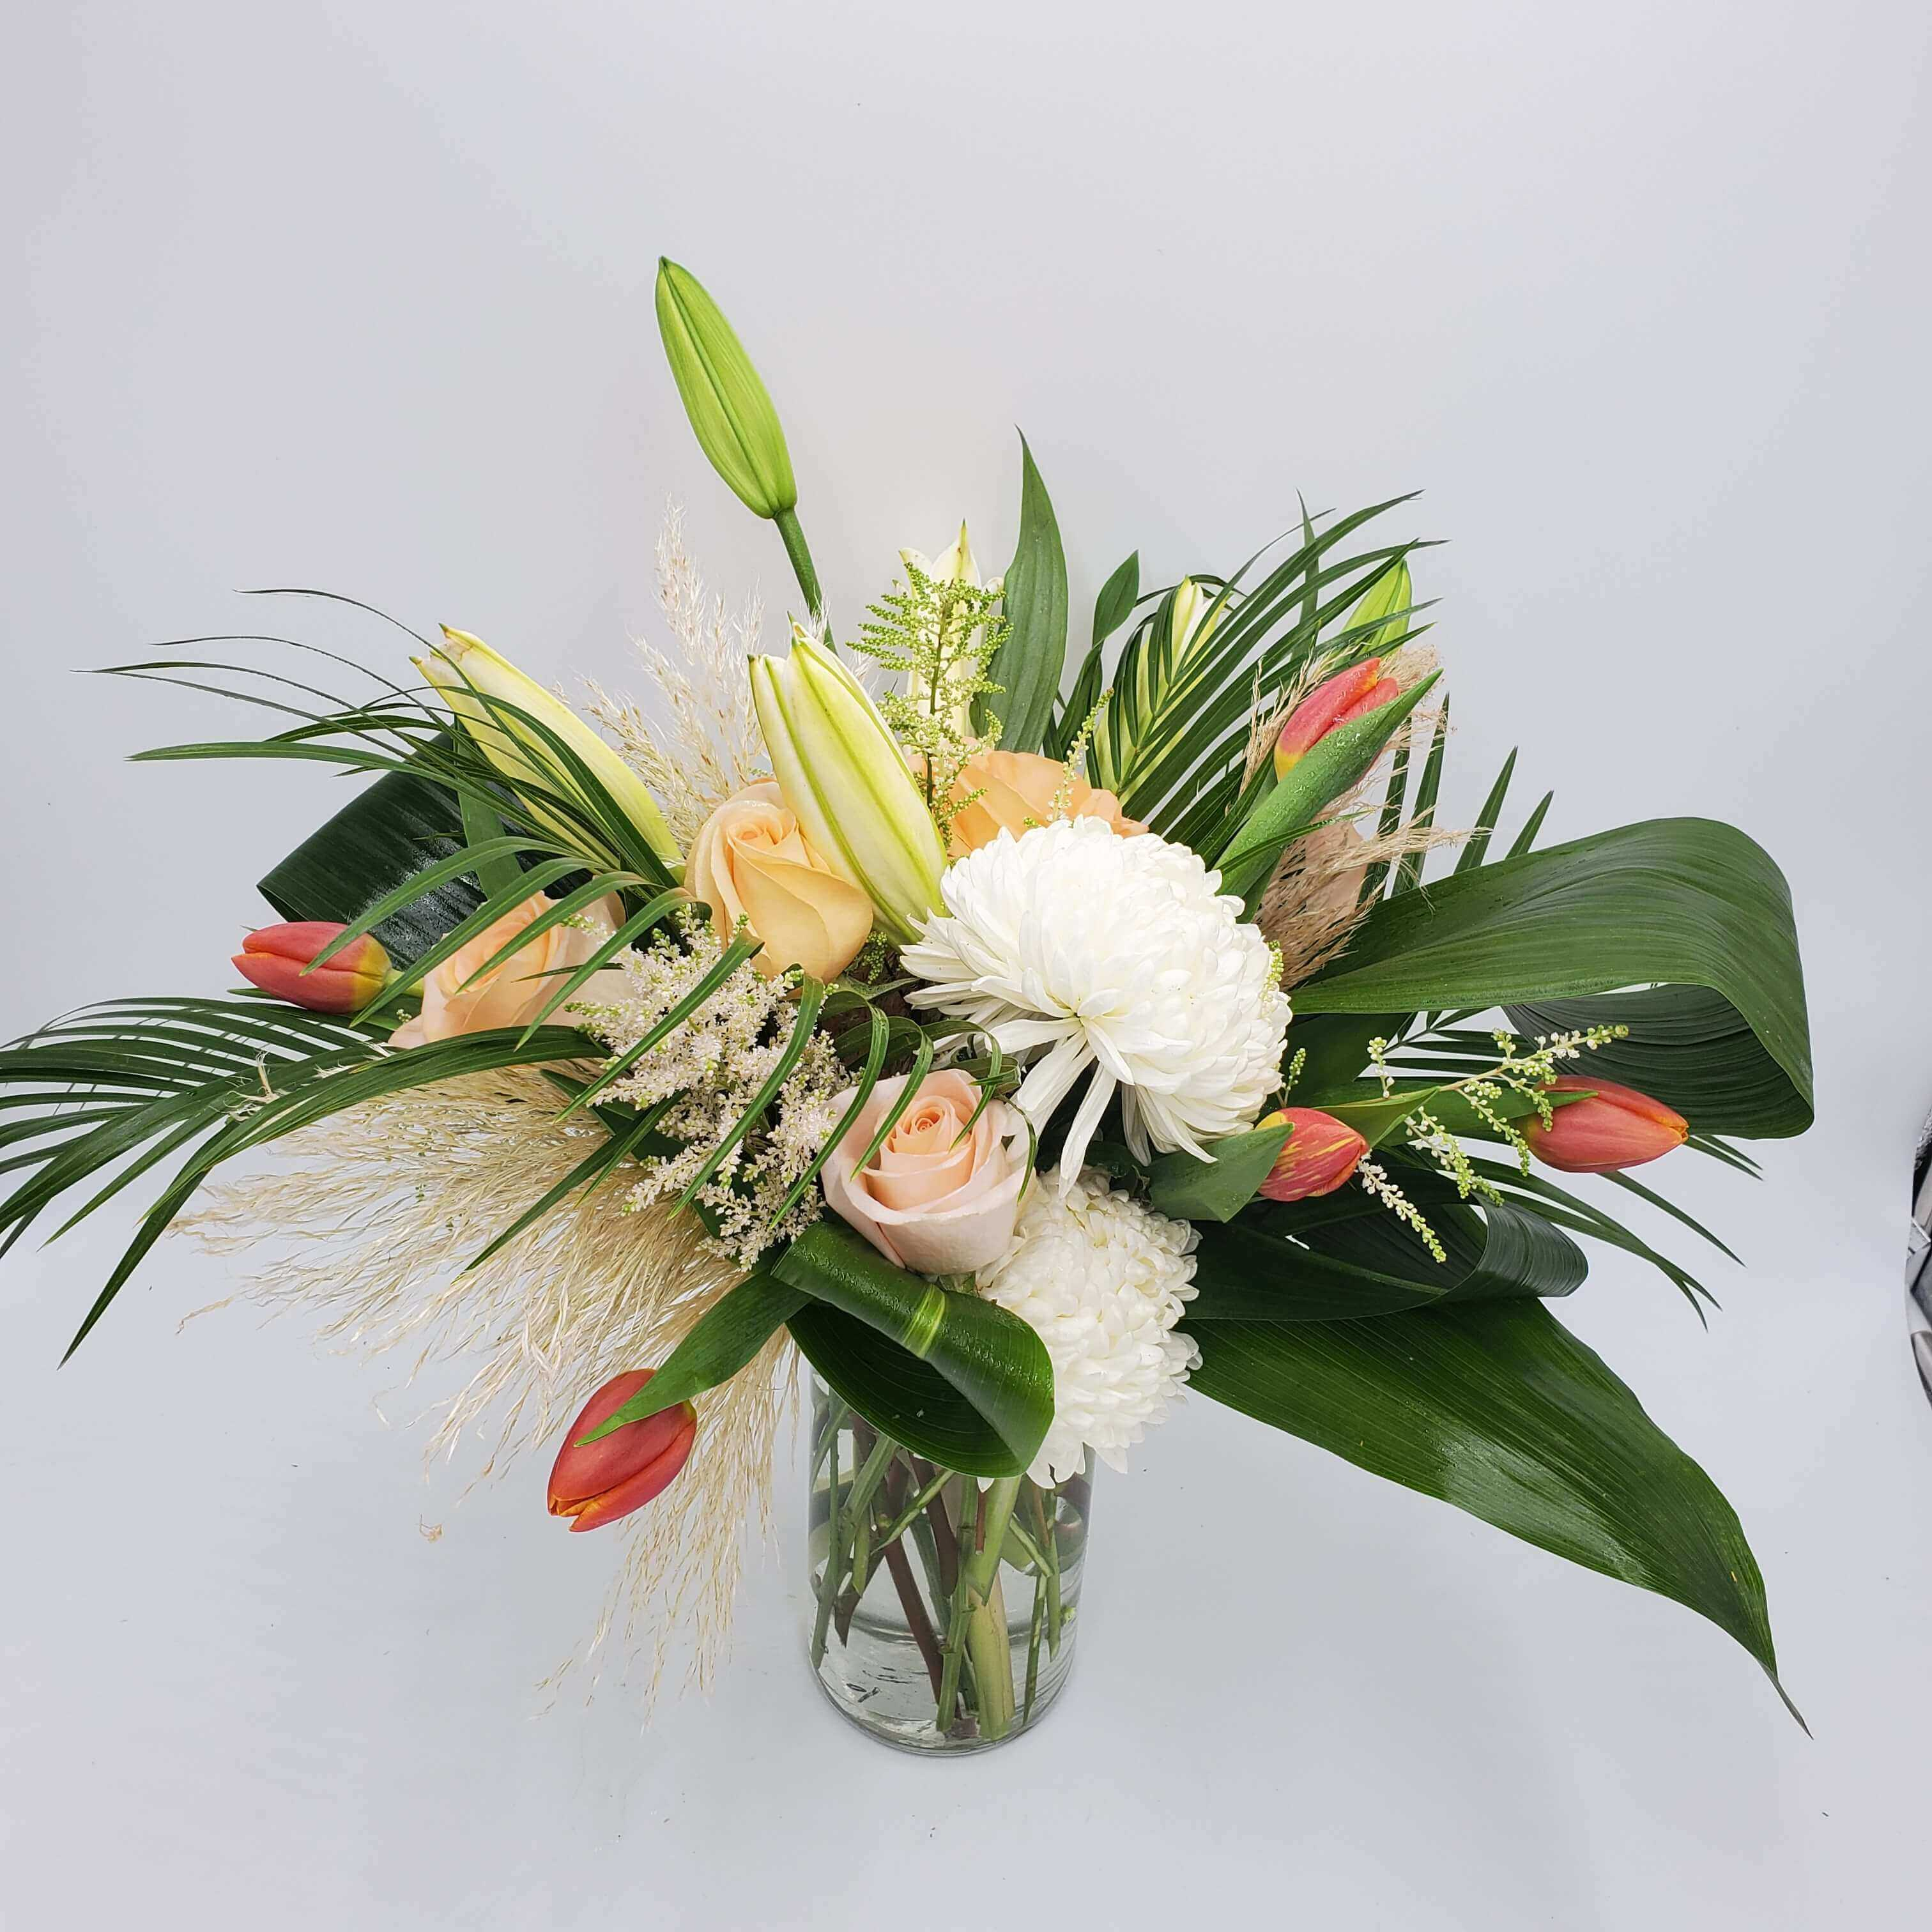 naturalistic floral design white and coral